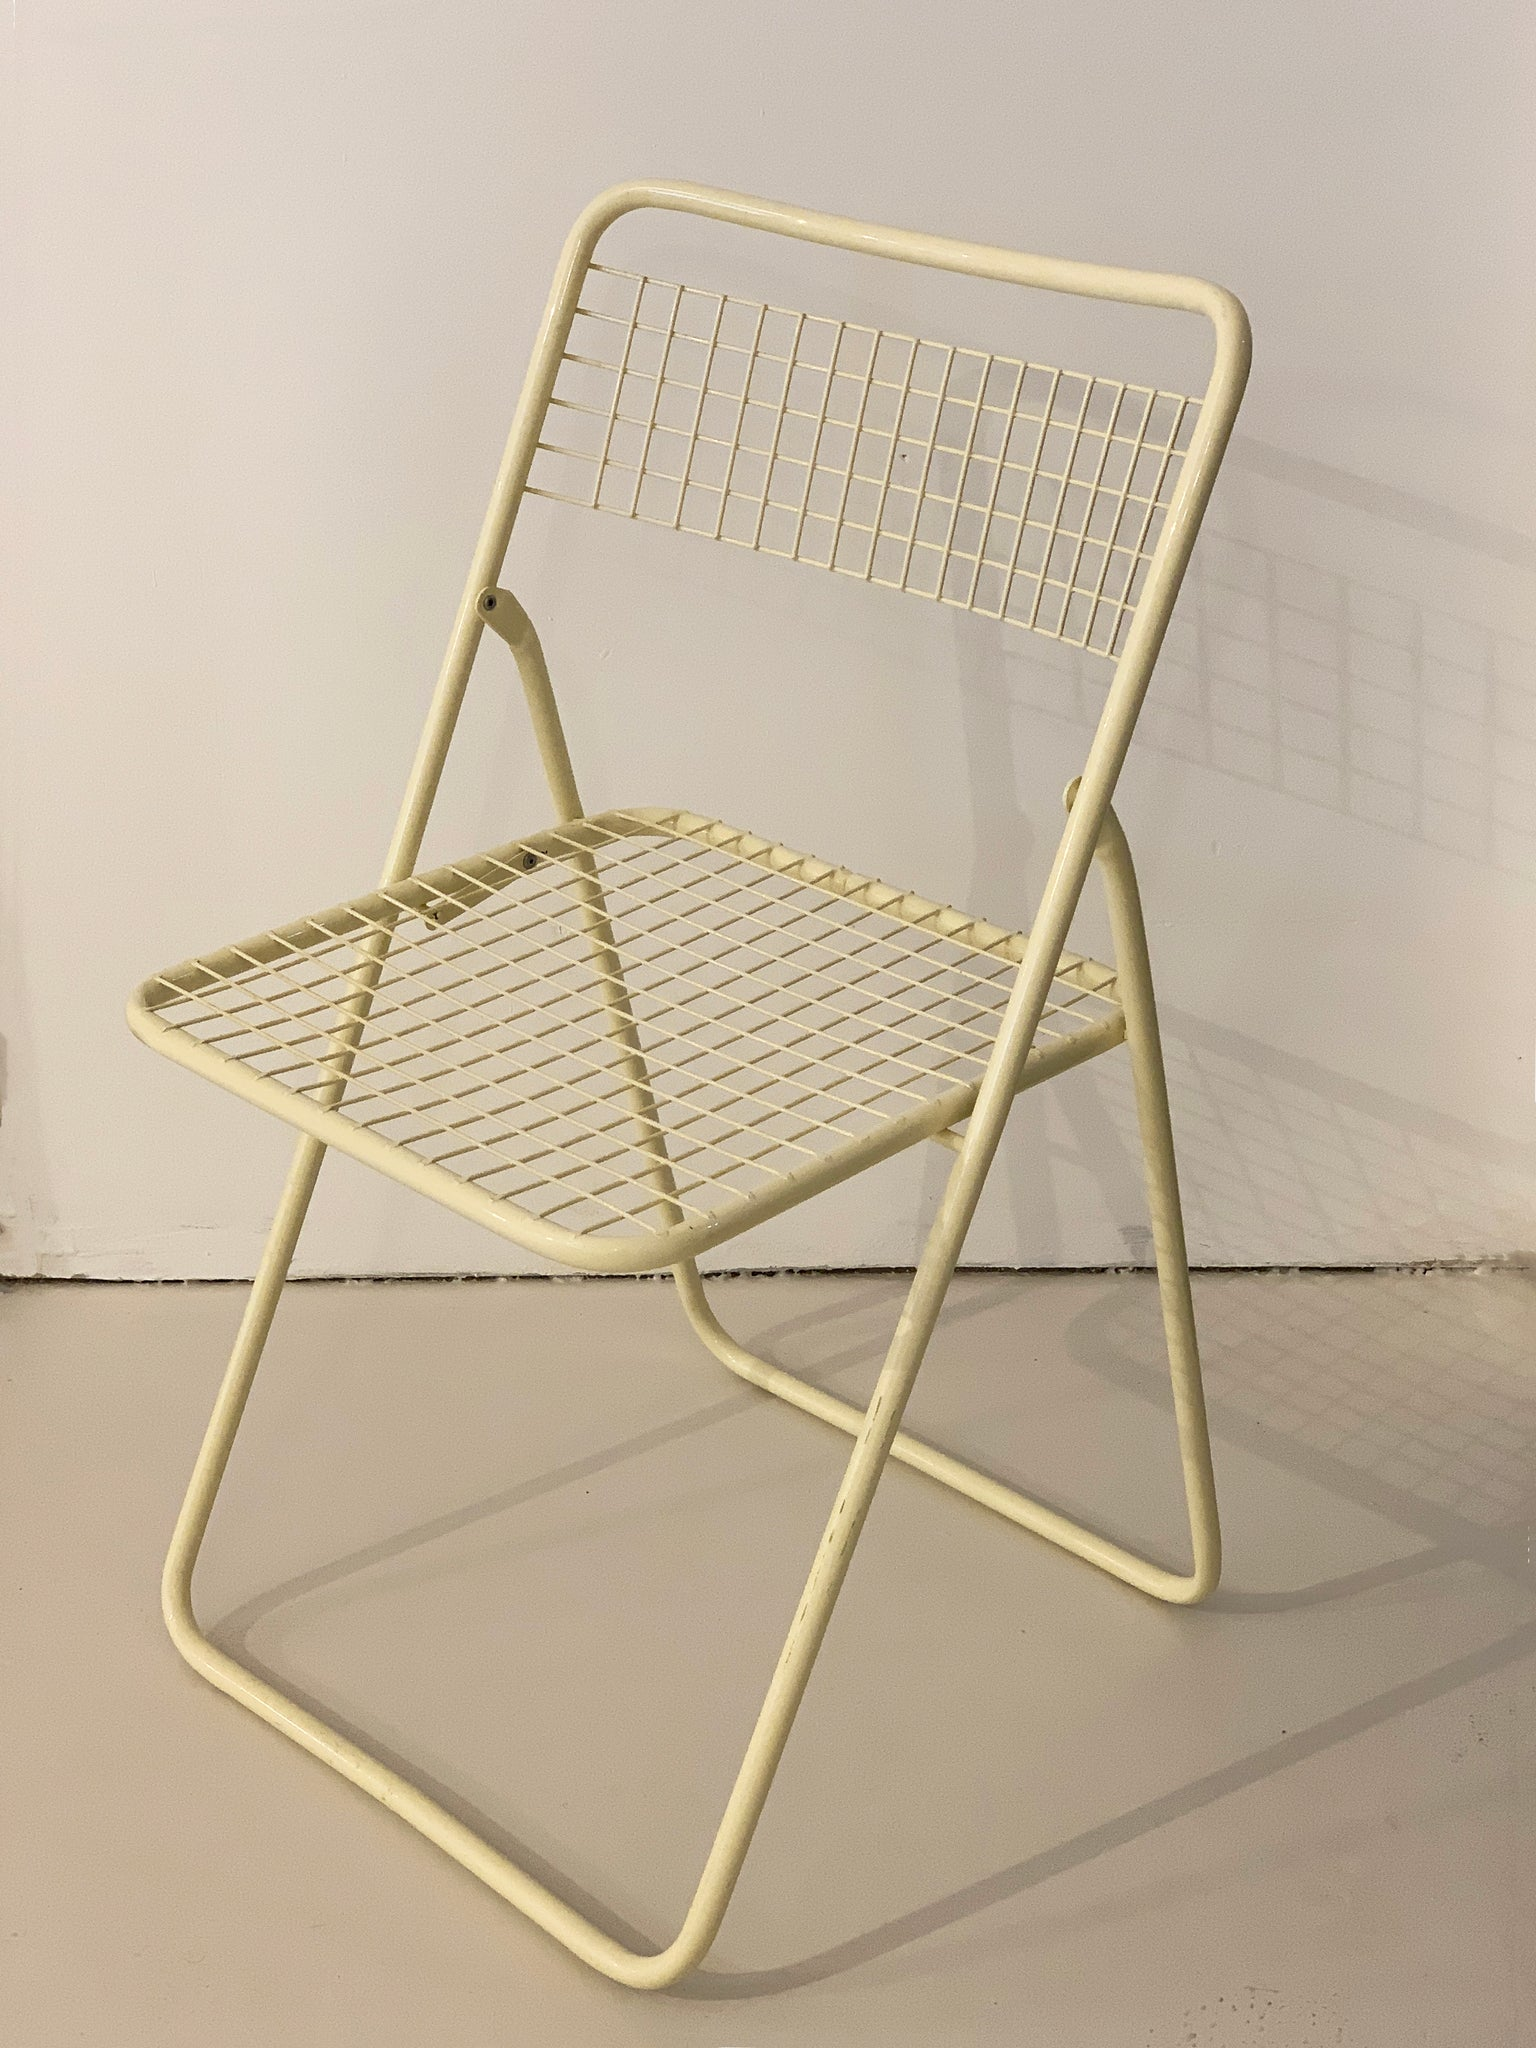 1979 Niels Gammelgaard Ted Net Cream Metal Grid Folding Chairs